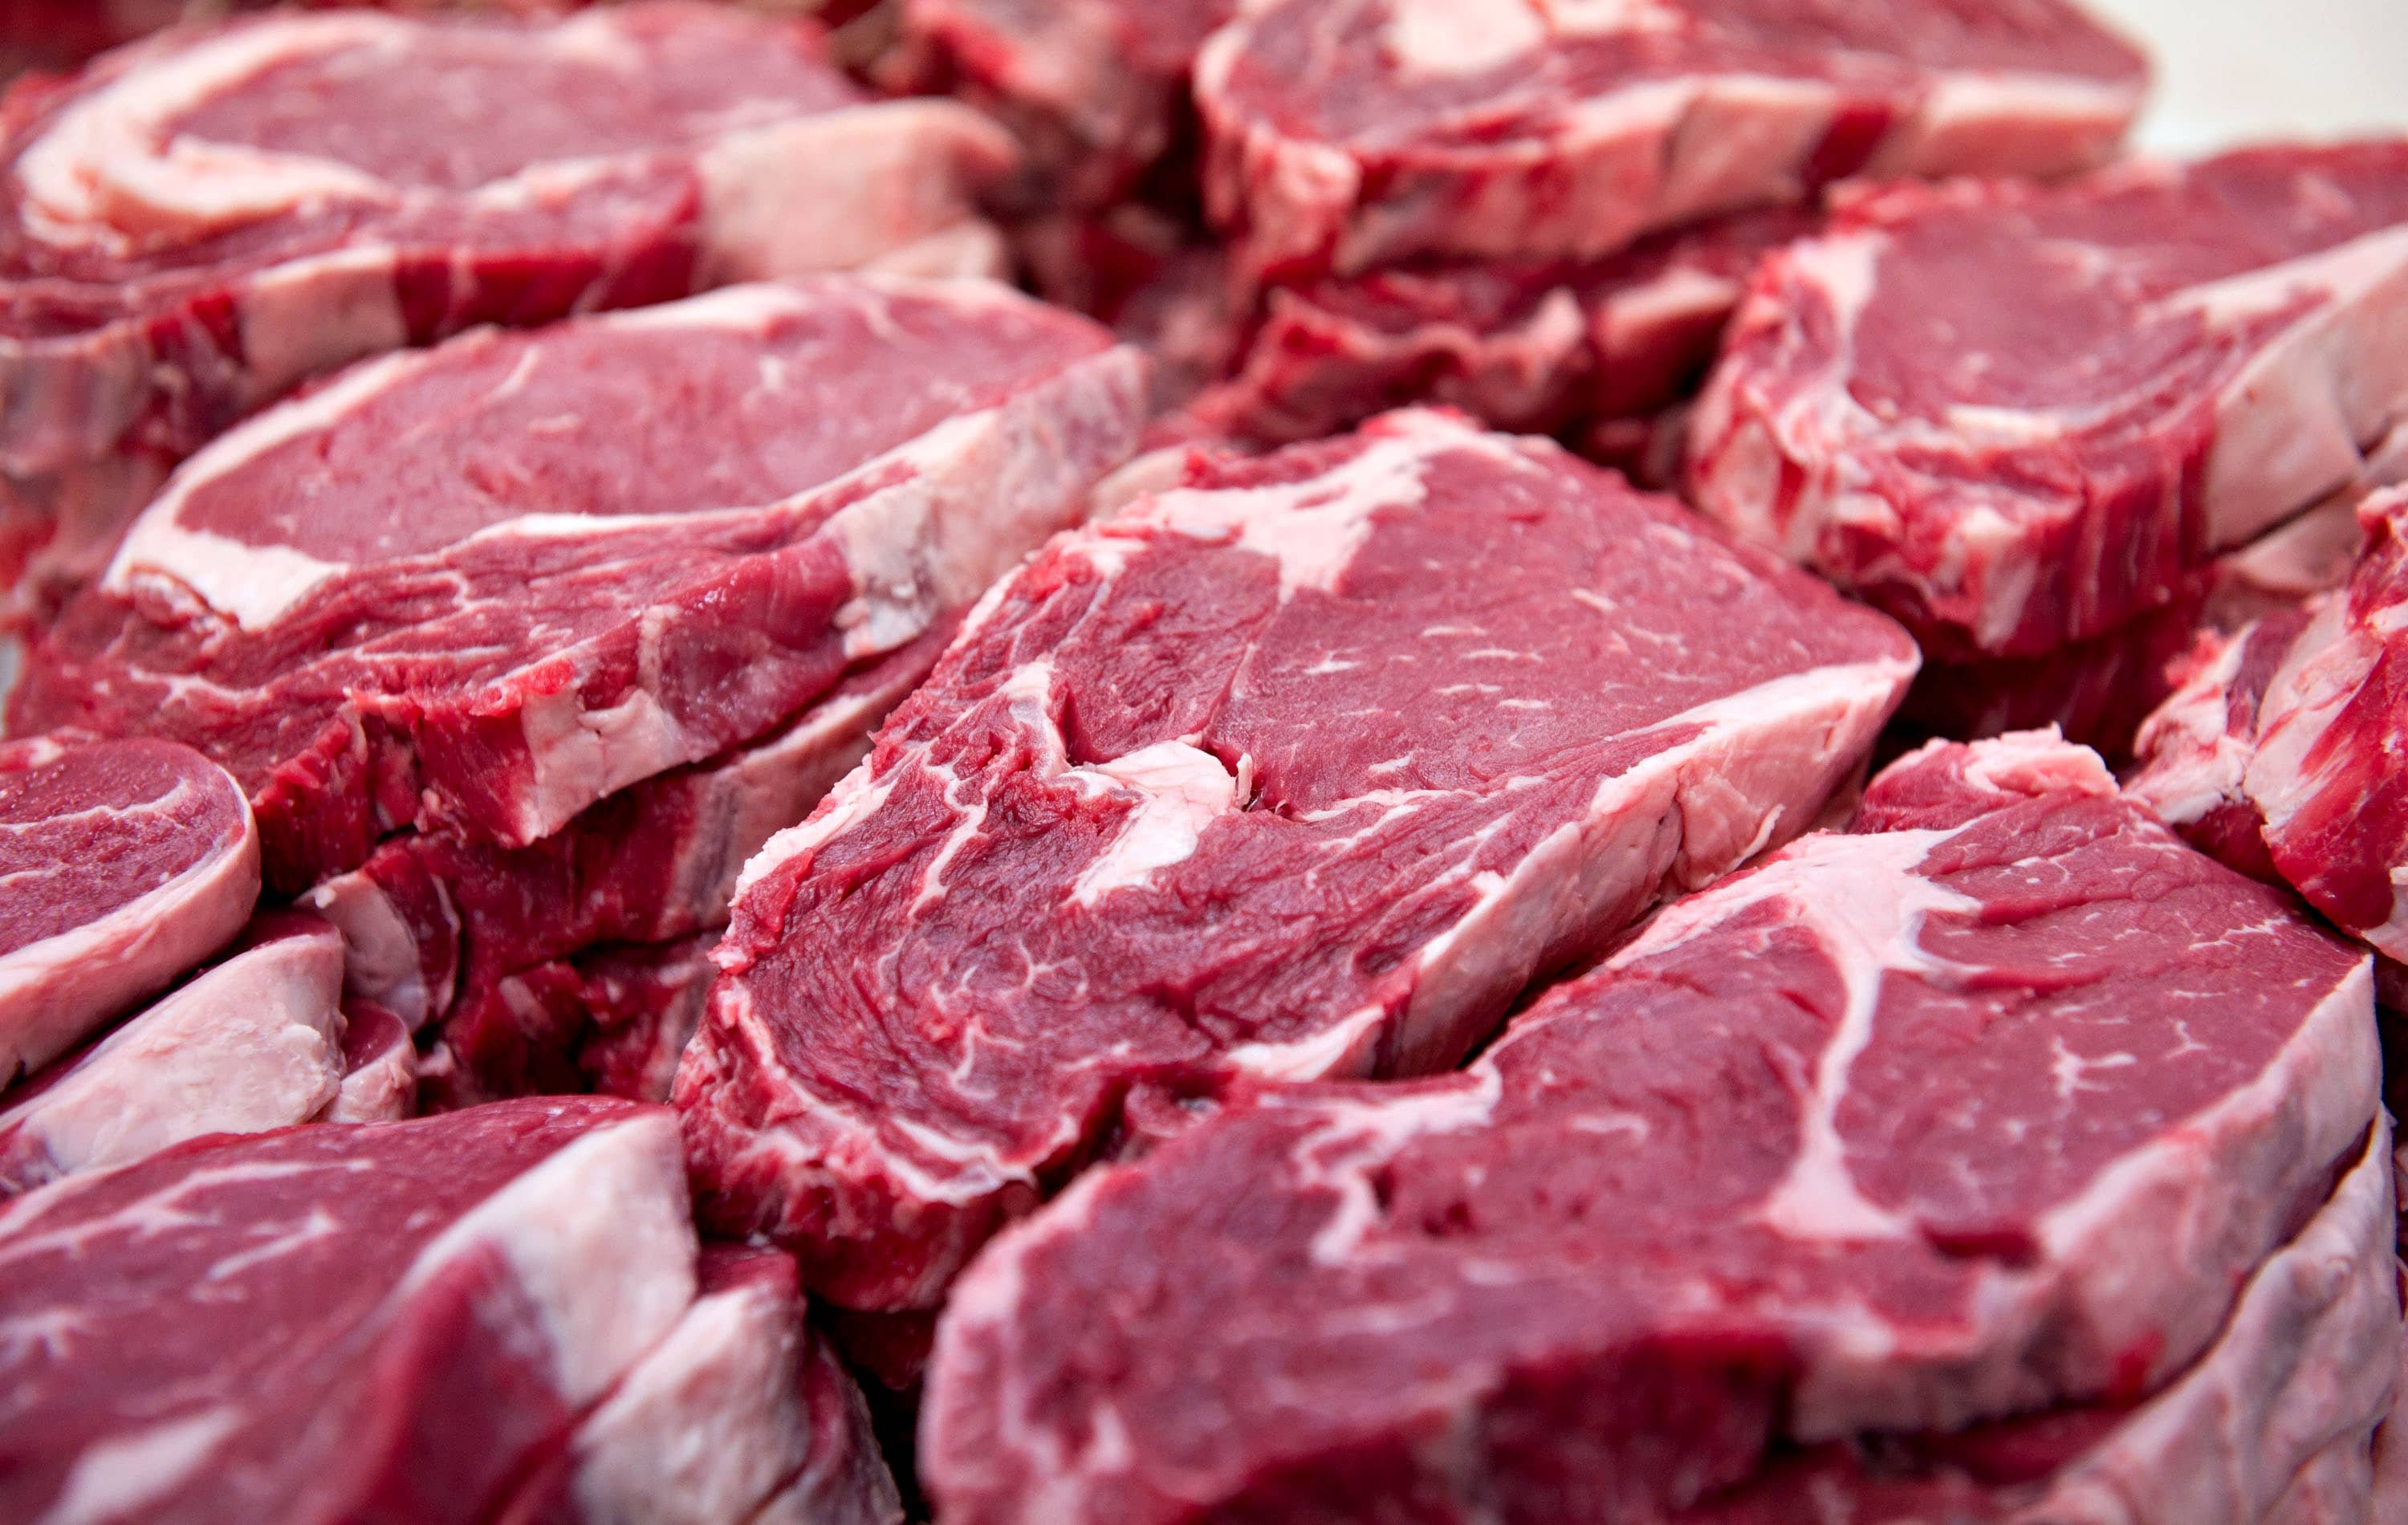 Japan ends longstanding trade restrictions on American beef, setting stage for exports to grow